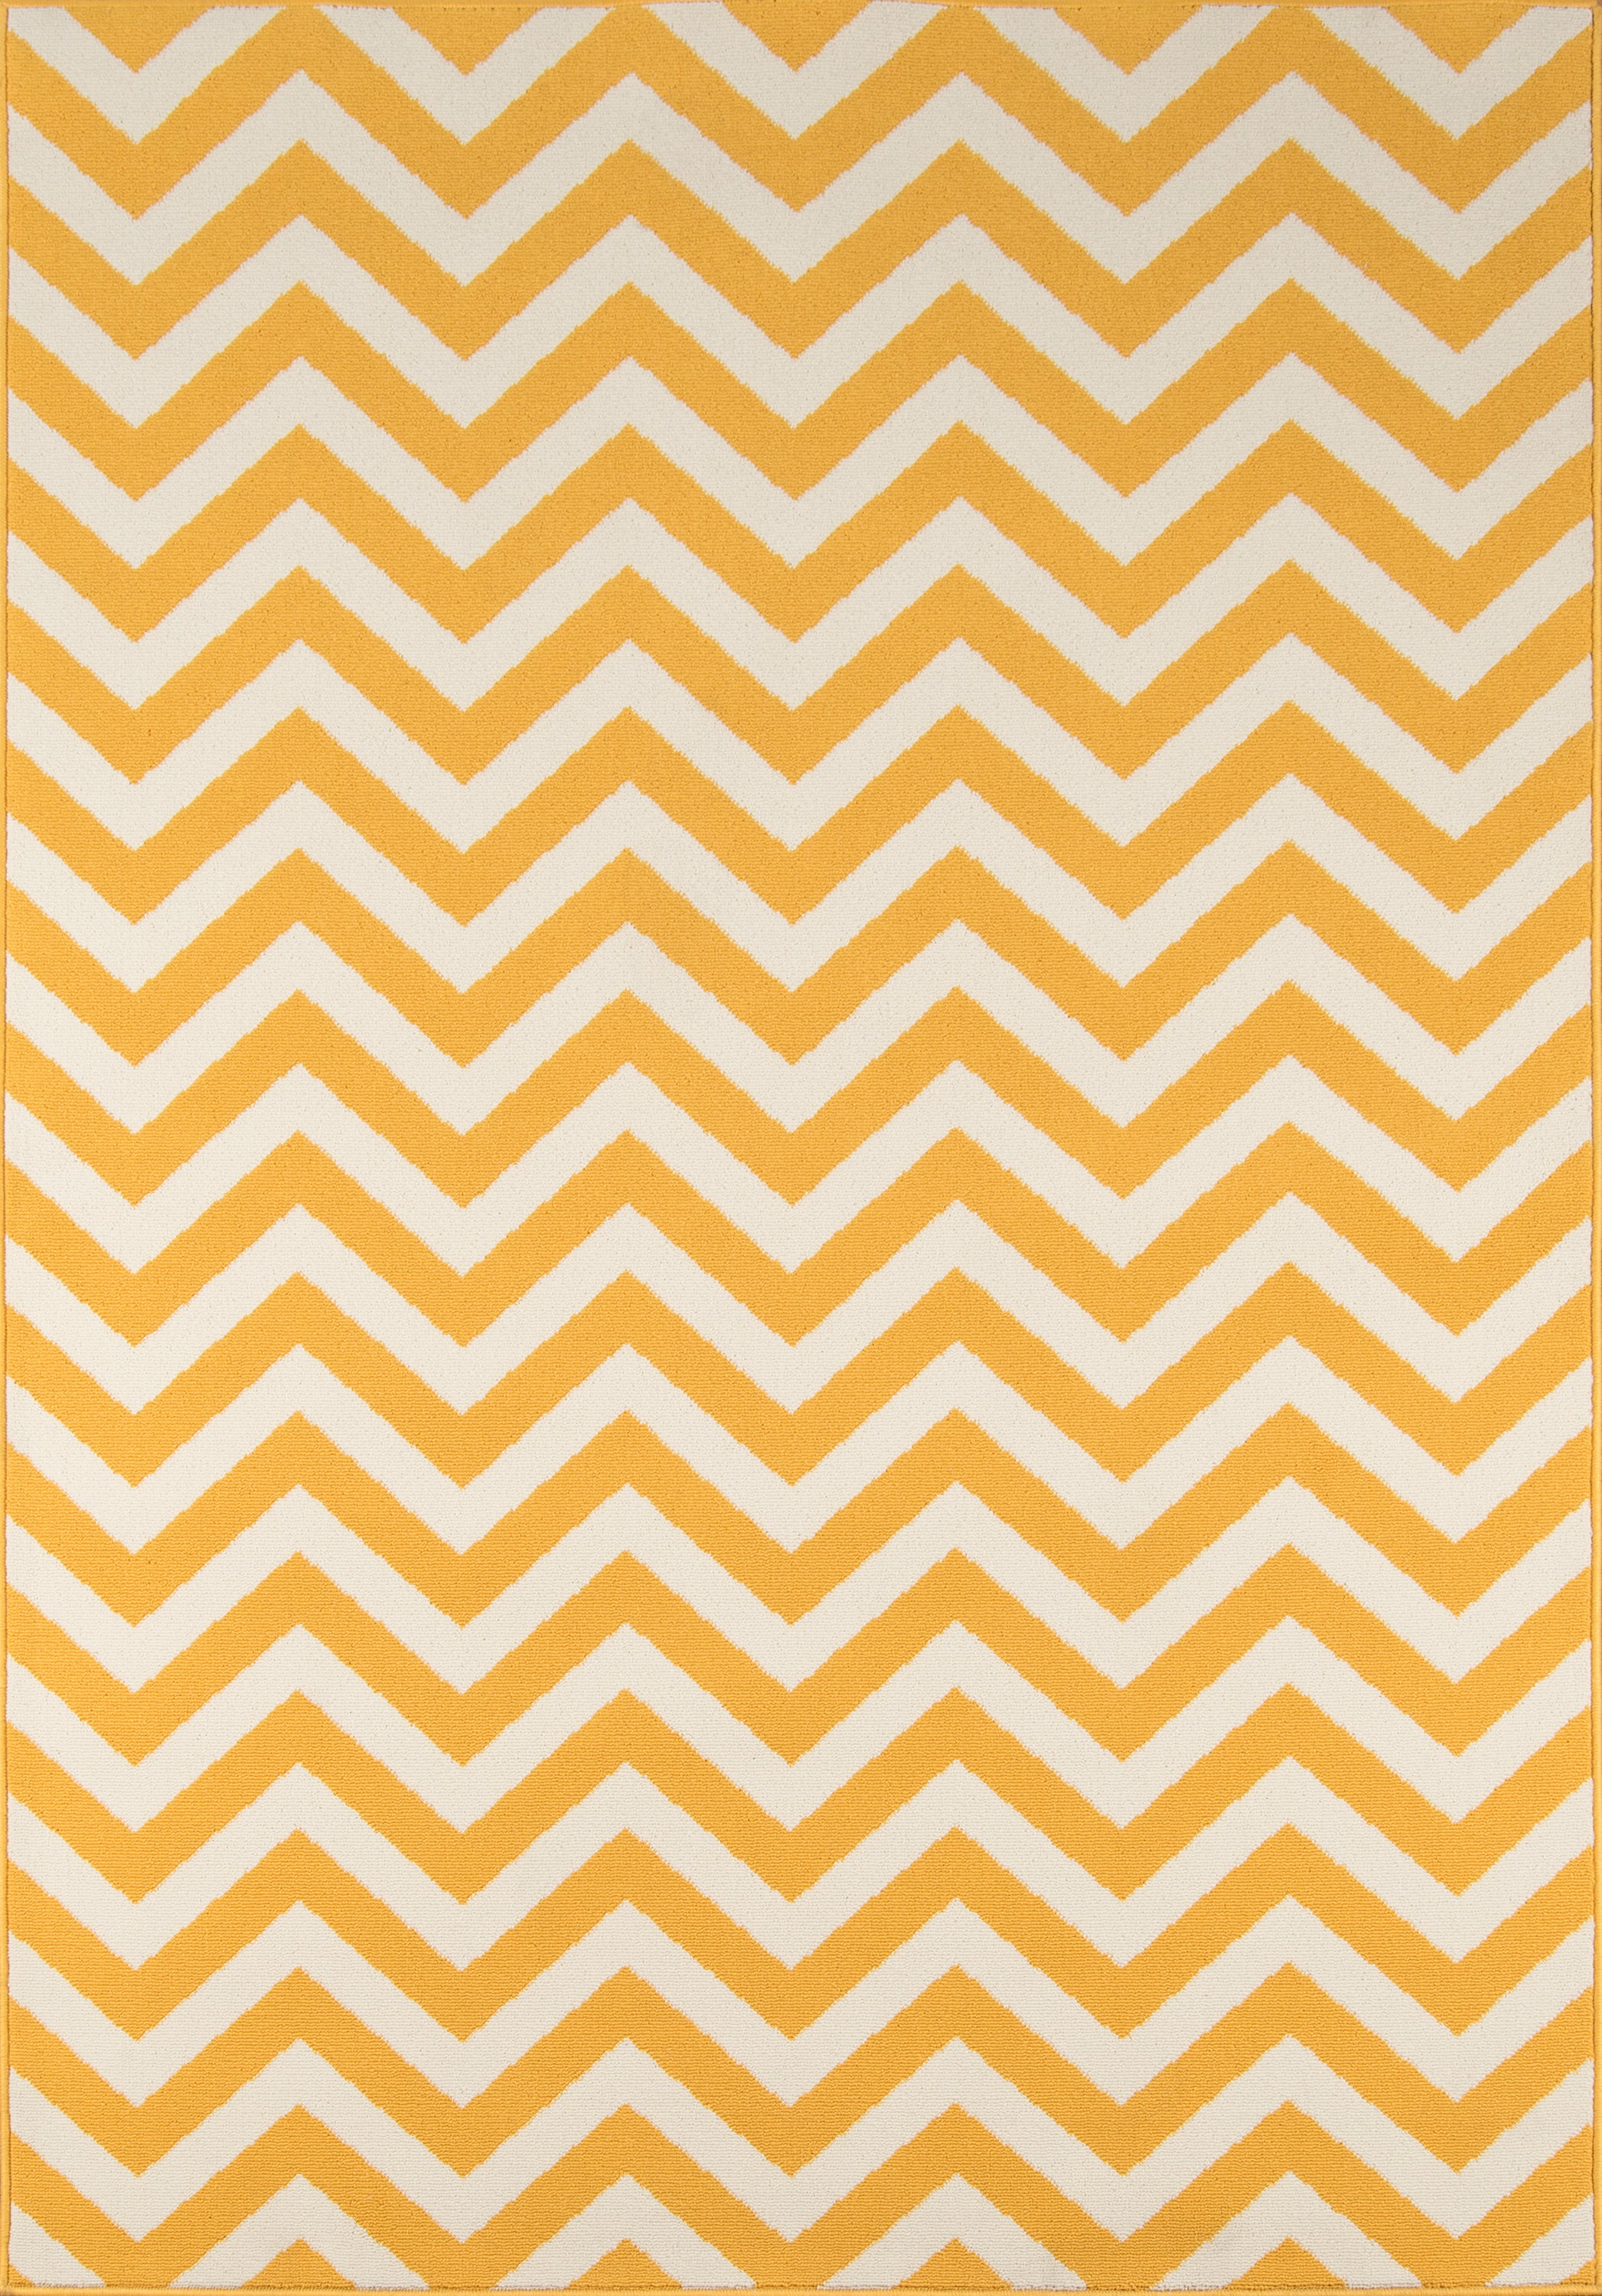 Rectangle 18x37 Yellow Chevron Machine Made Synthetics Contemporary recommended for Kitchen, Bedroom, Bathroom, Outdoor, Dining Room, Office, Hallway, Living Room